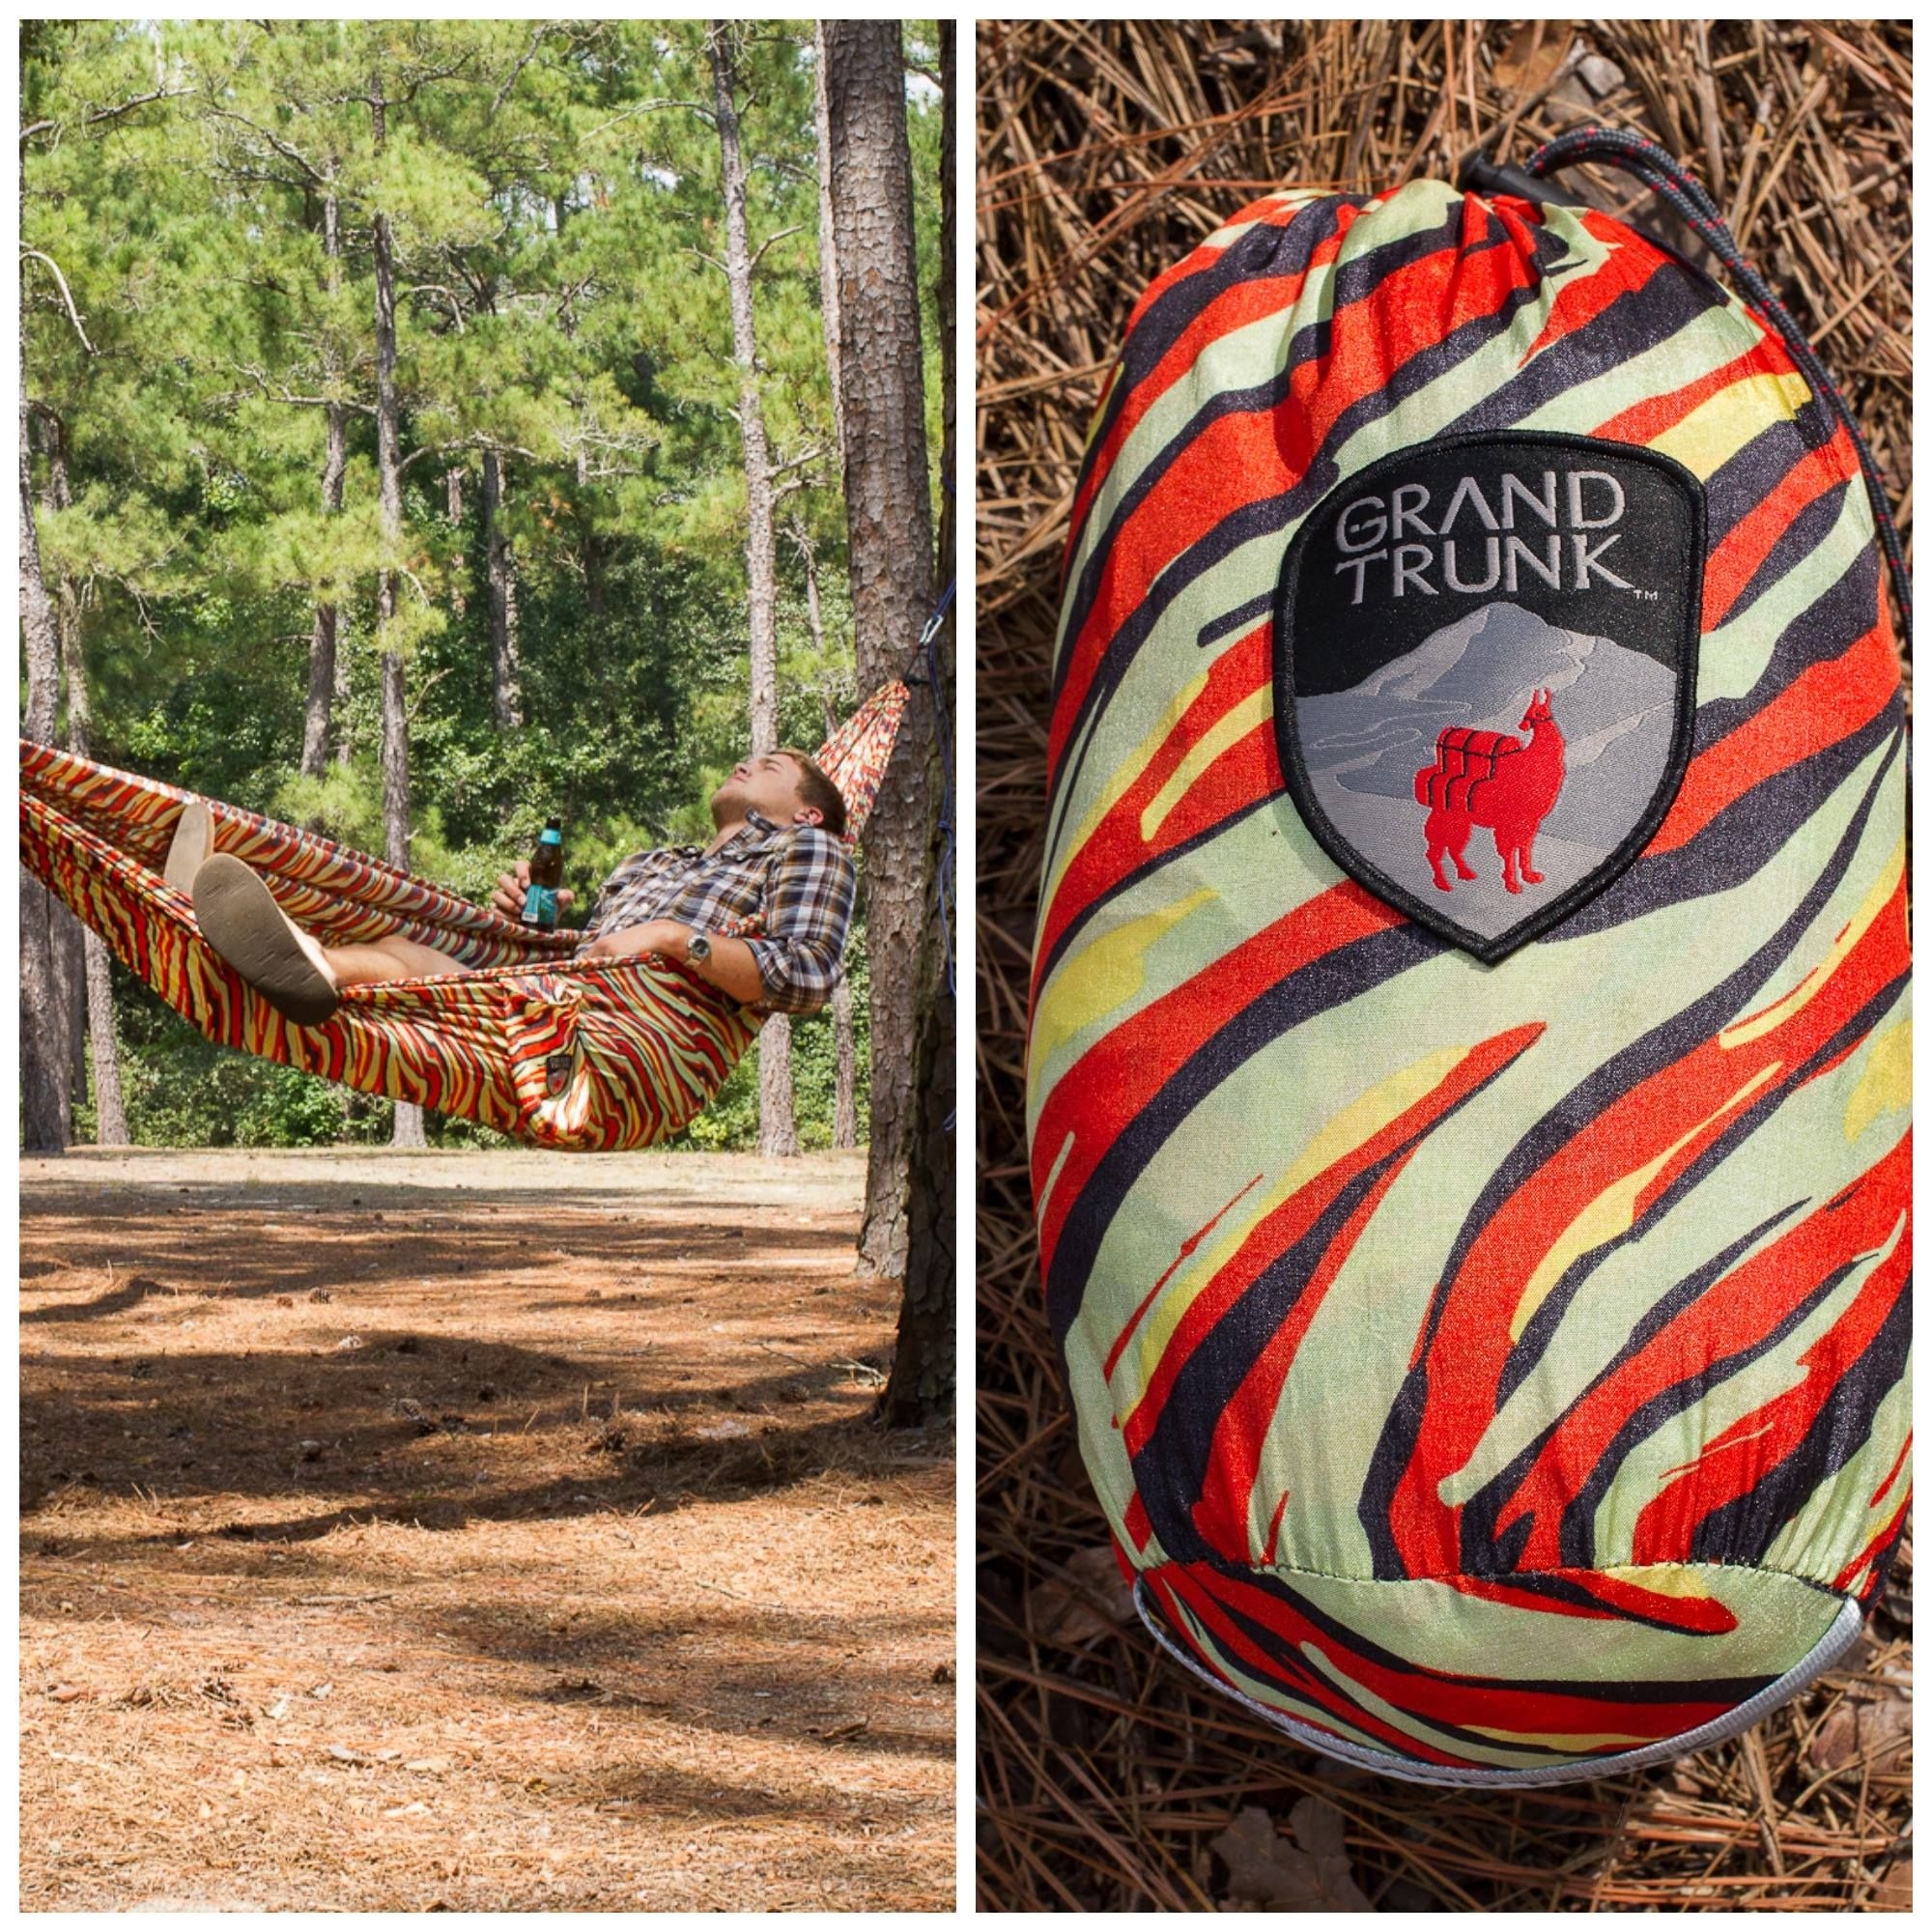 Tiger Print Double Hammock Grand Trunk Hammock Double